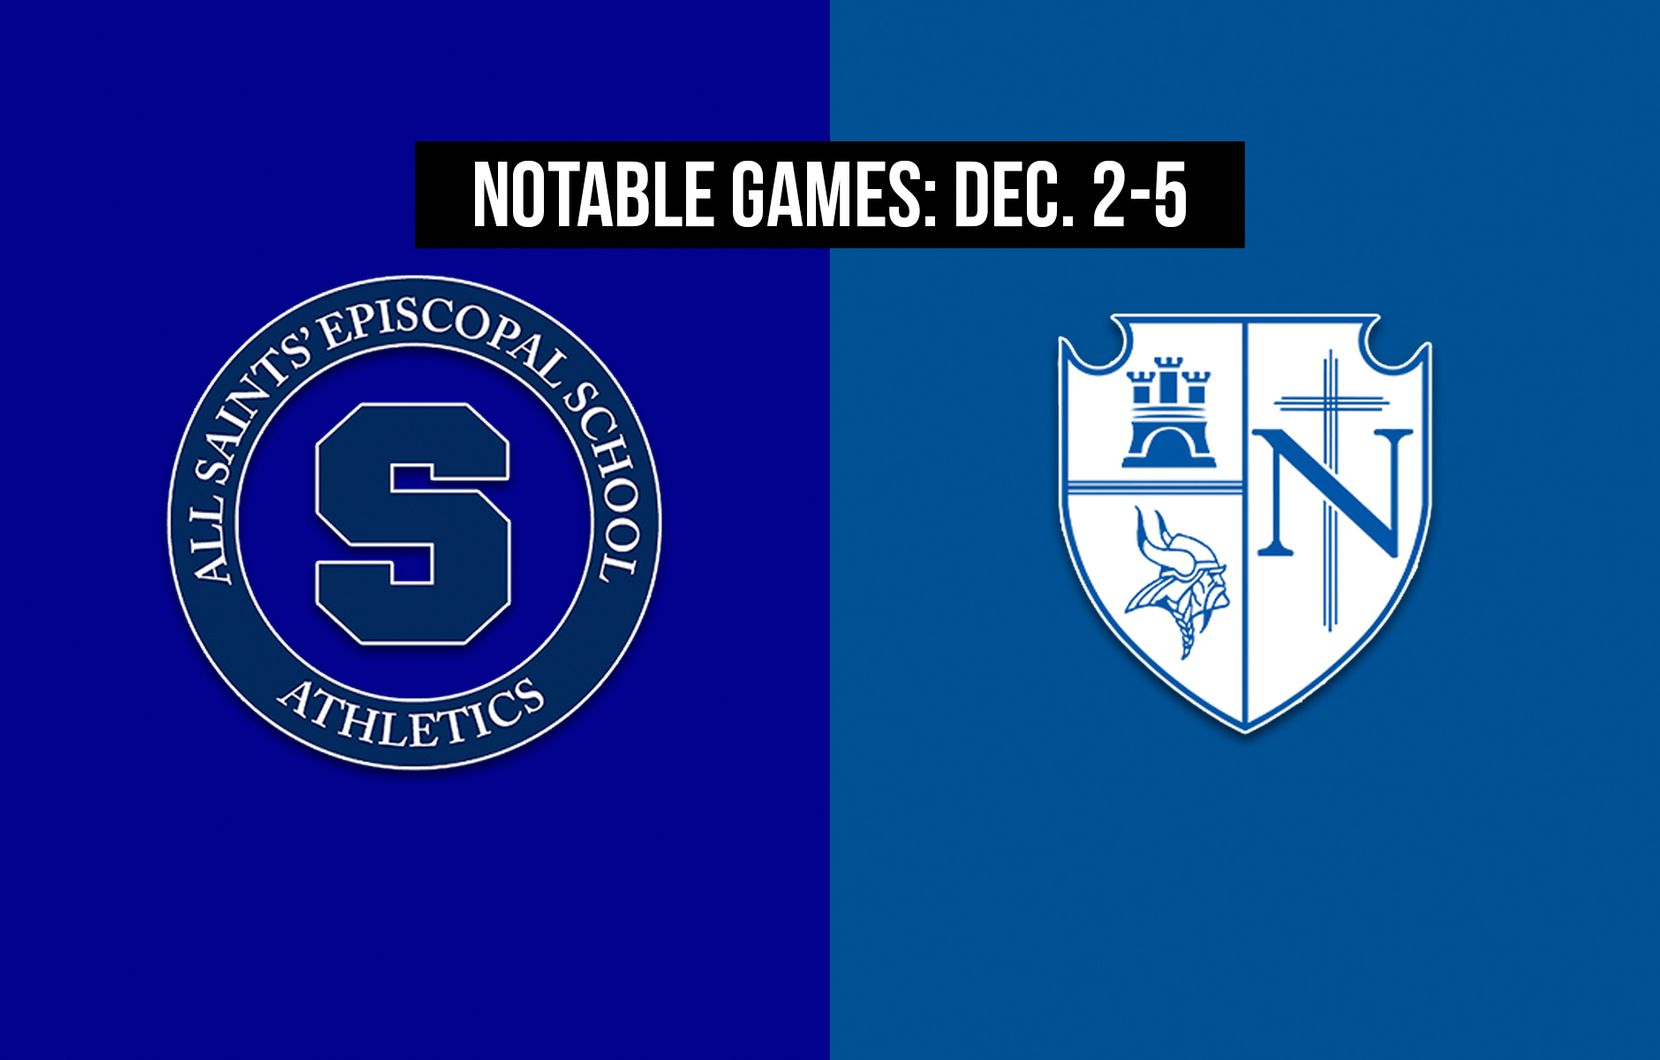 Notable games for the week of Dec. 2-5 of the 2020 season: Fort Worth All Saints vs. Fort Worth Nolan.